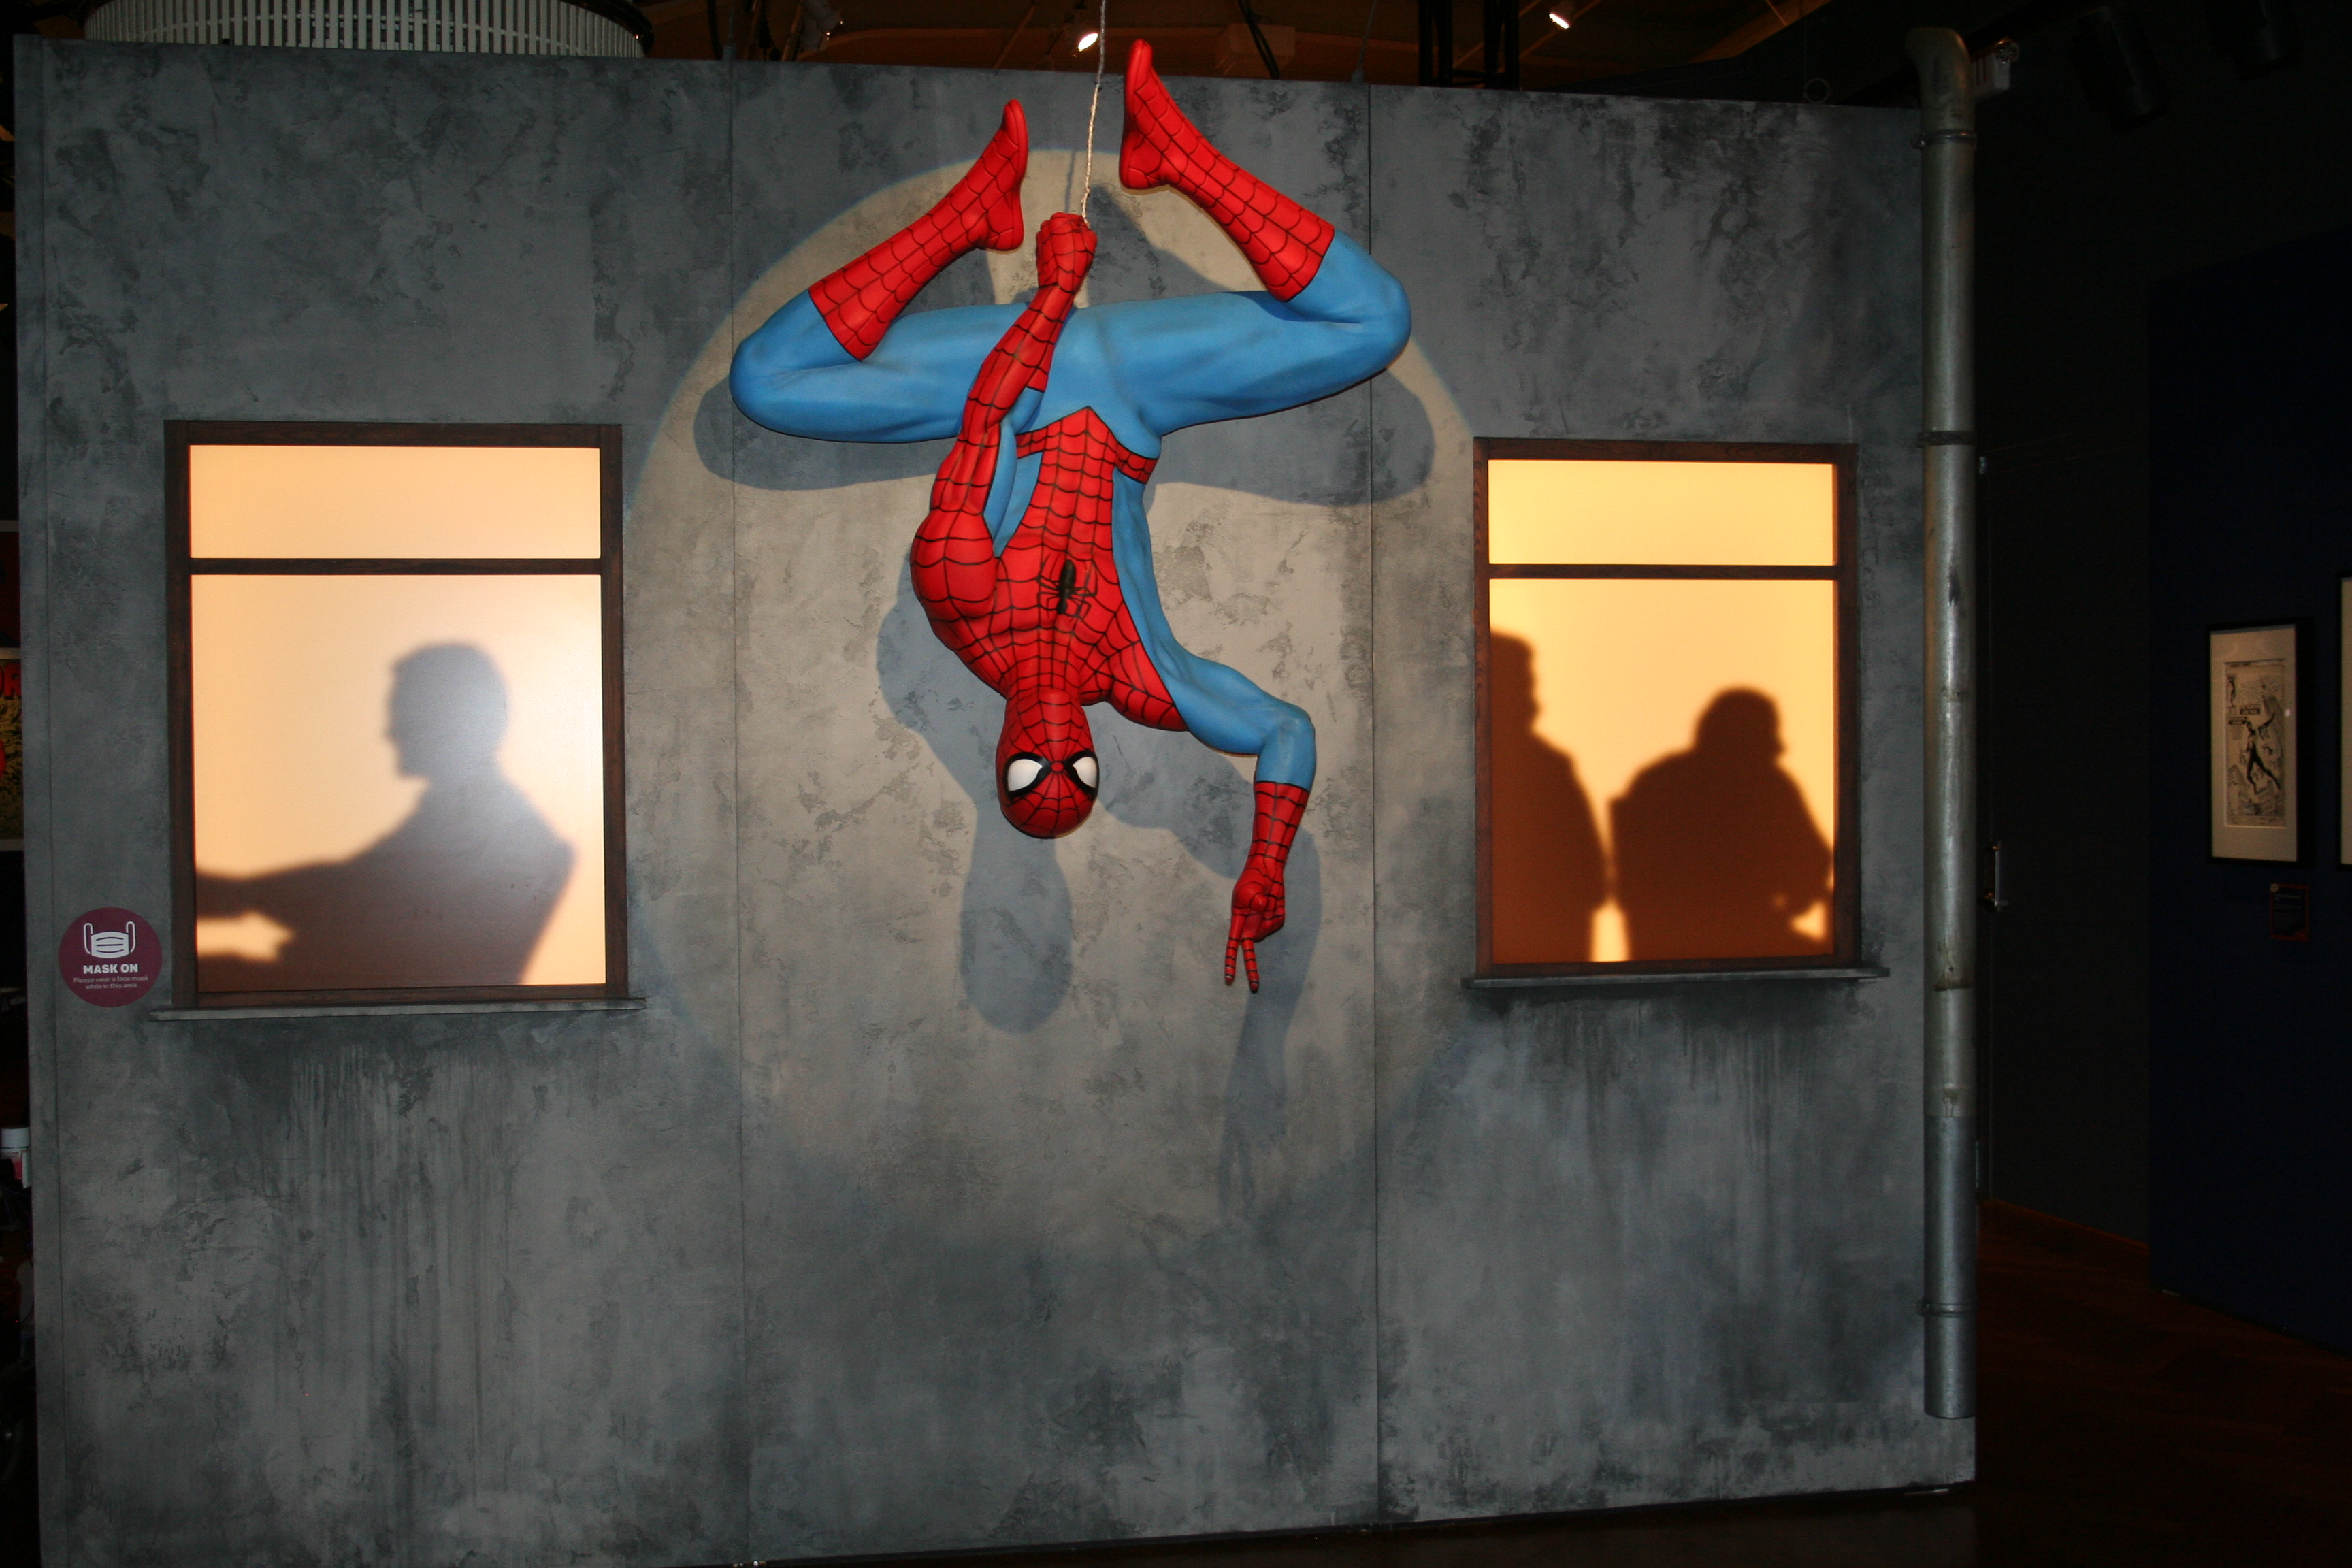 Spiderman exhibit part of Marvel Universe of Superheroes Henry Ford Museum of Innovation Dearborn MI